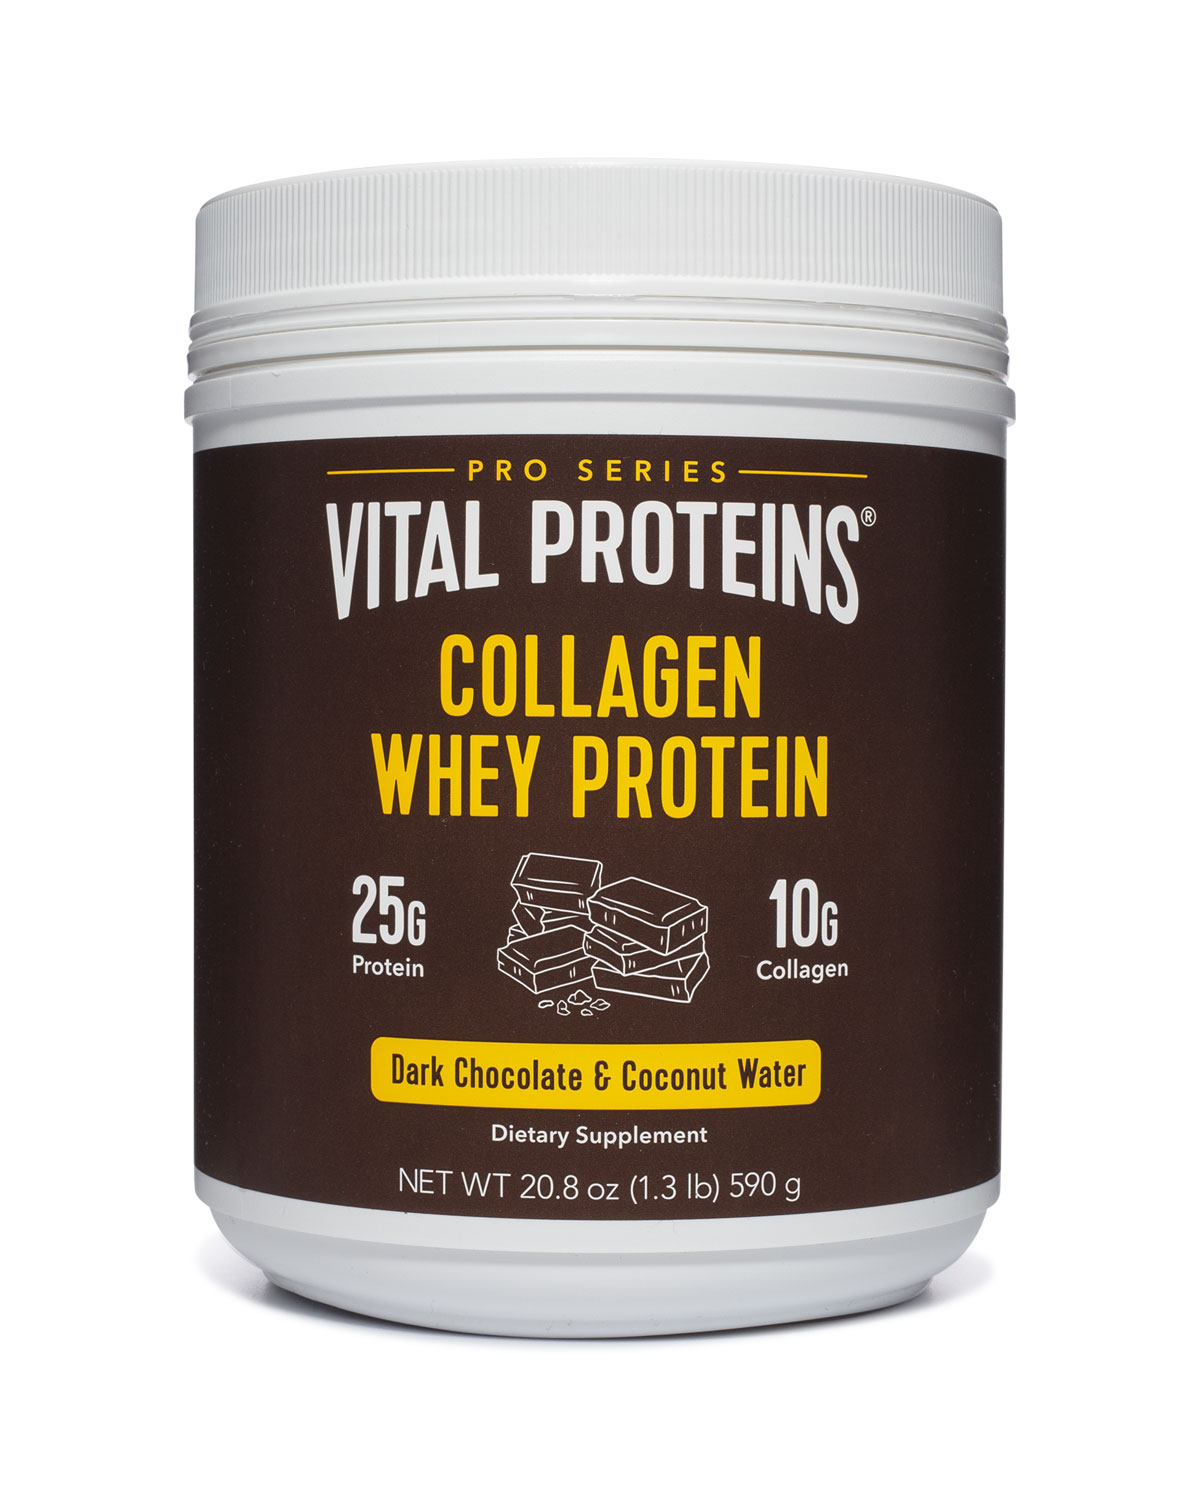 VITAL PROTEINS Collagen Whey (Cocoa & Coconut Water)